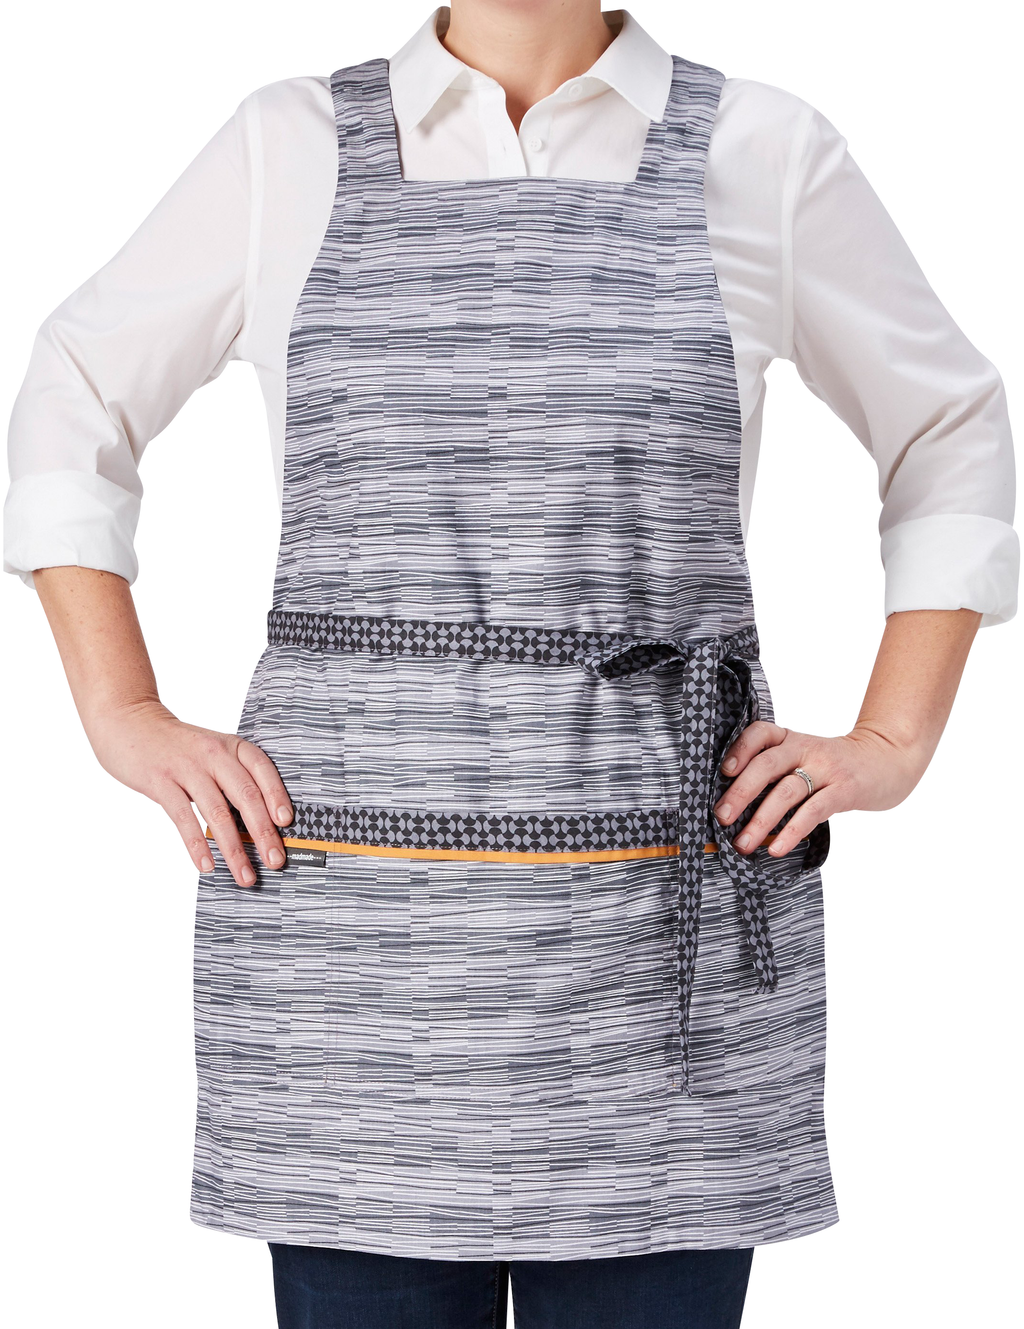 A modern apron in a subtle mix of grey geometric prints, broken stripe print in light and dark gray and white on one side reversing to a light and dark gray oval print on the other, stripe print side, front view.